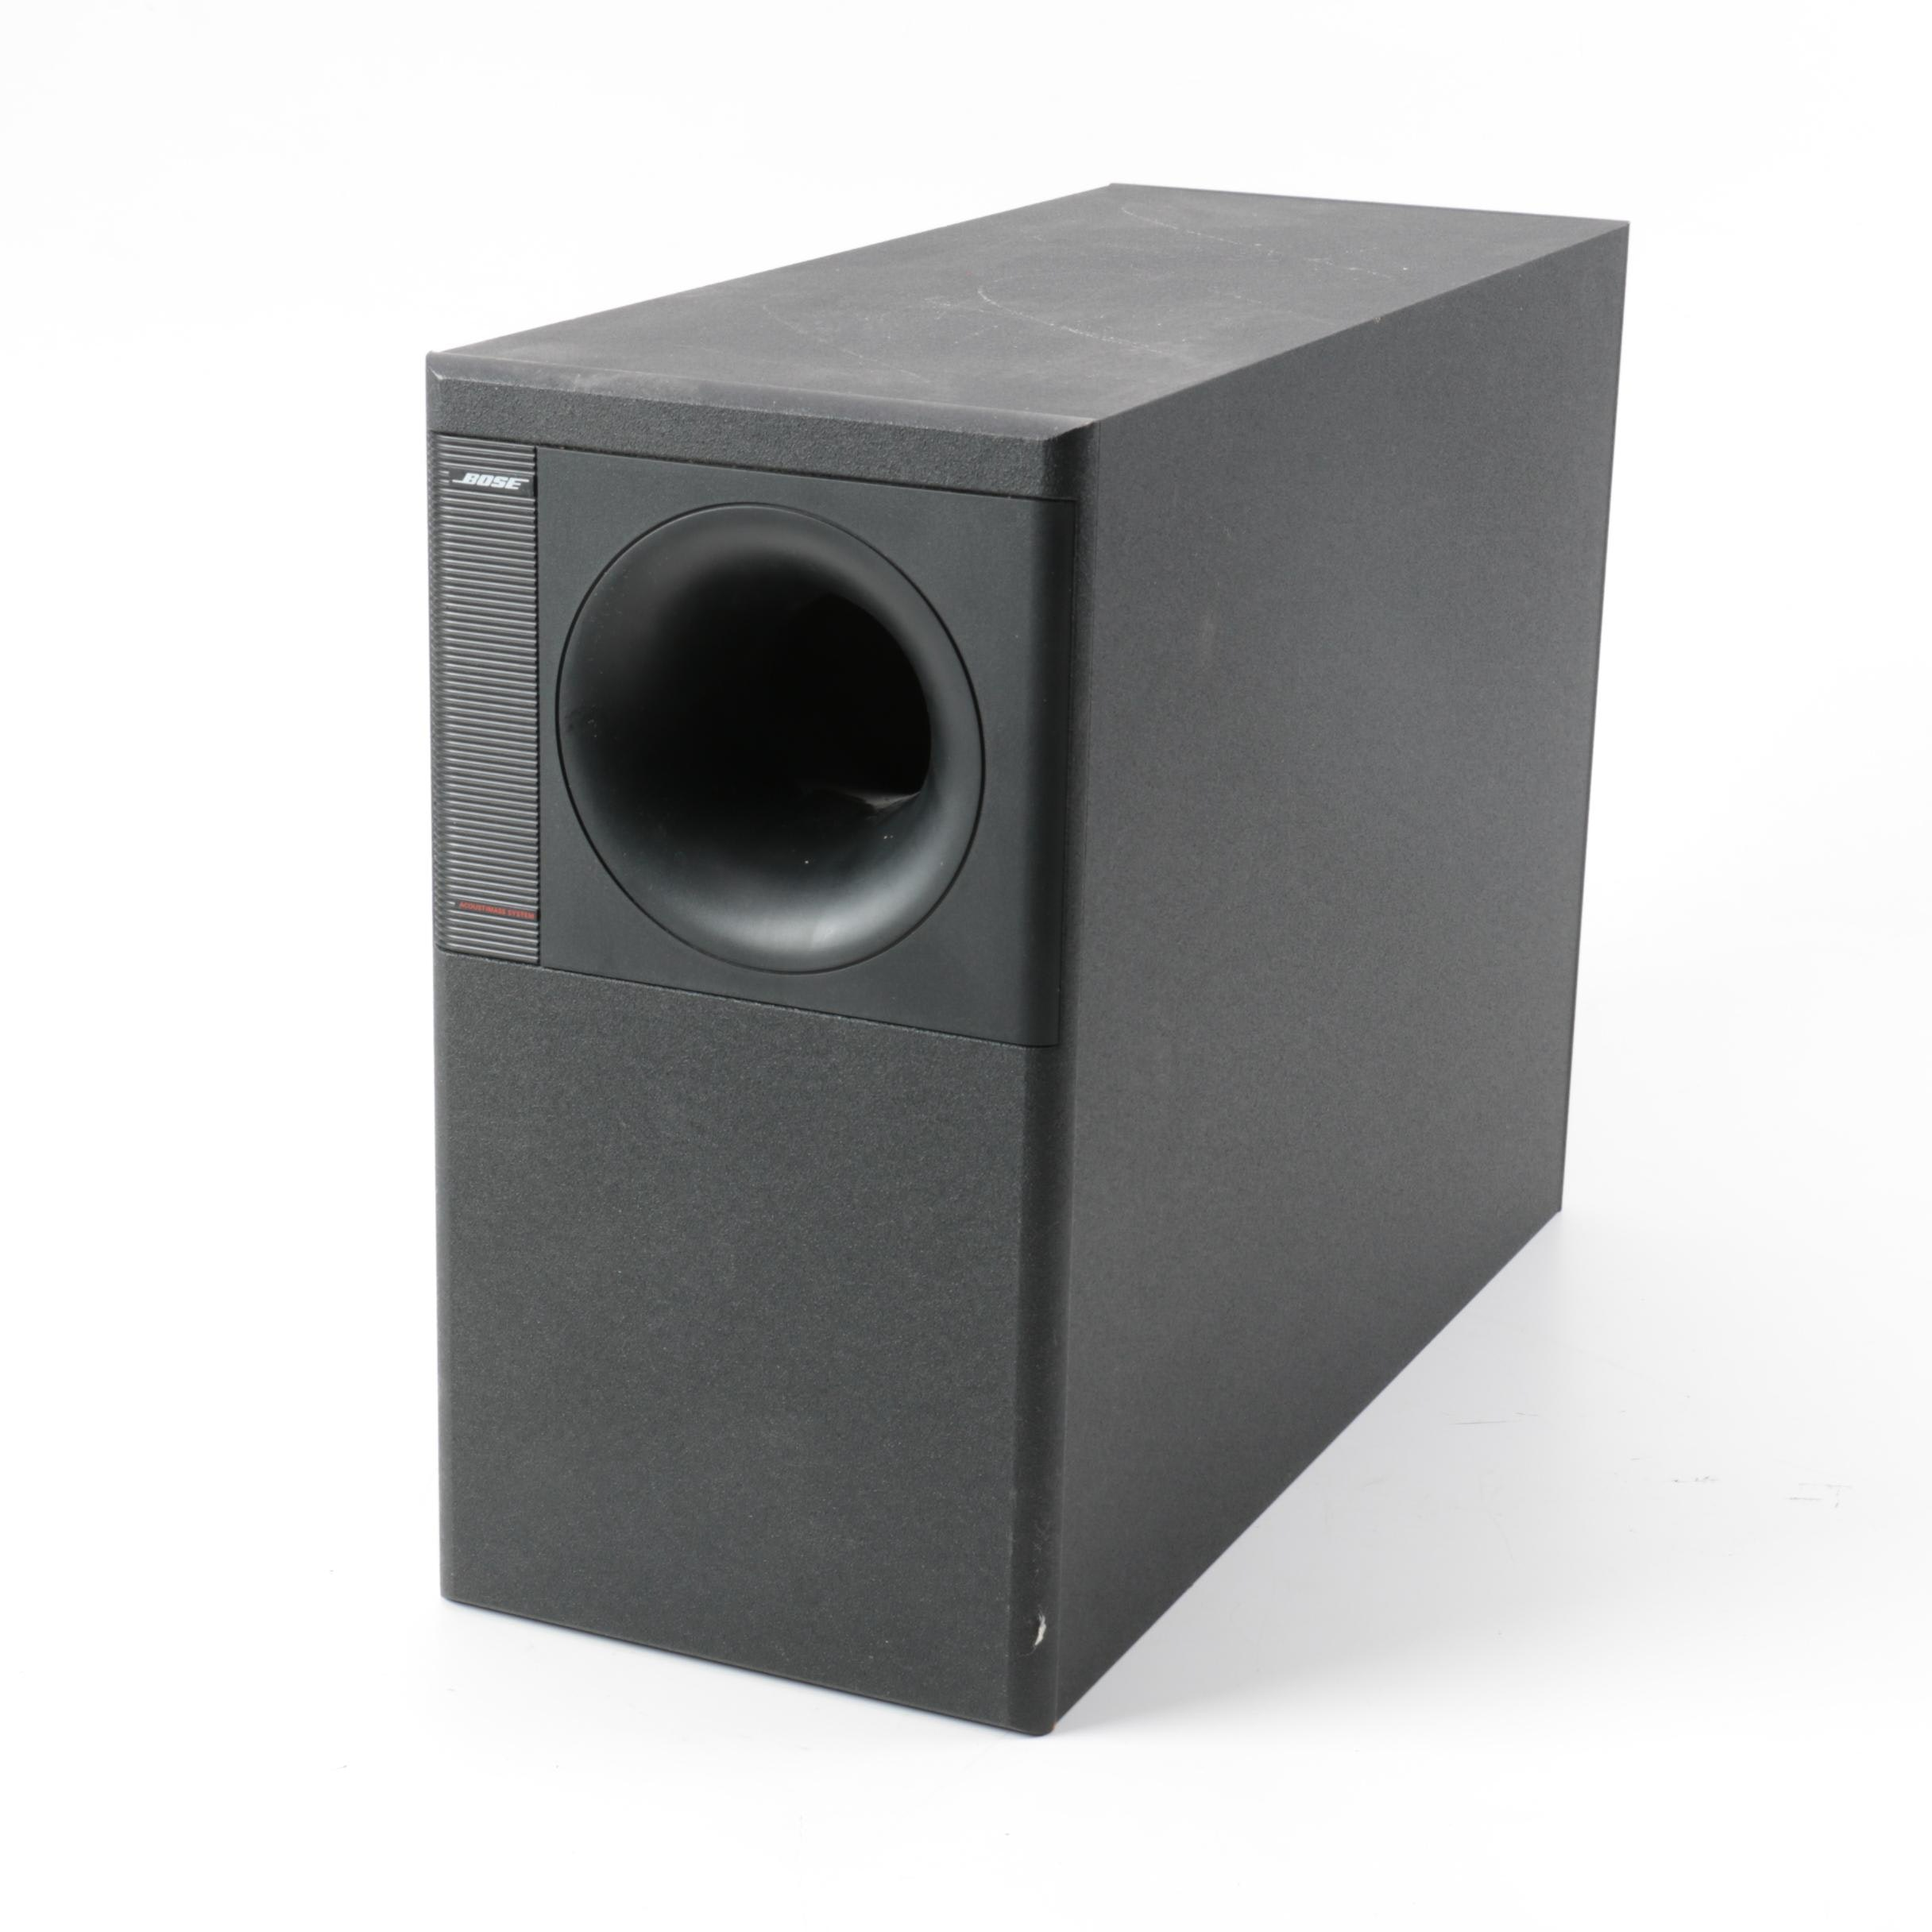 Bose Acoustimass 5 Series 2 Direct Reflecting Speaker System Subwoofer